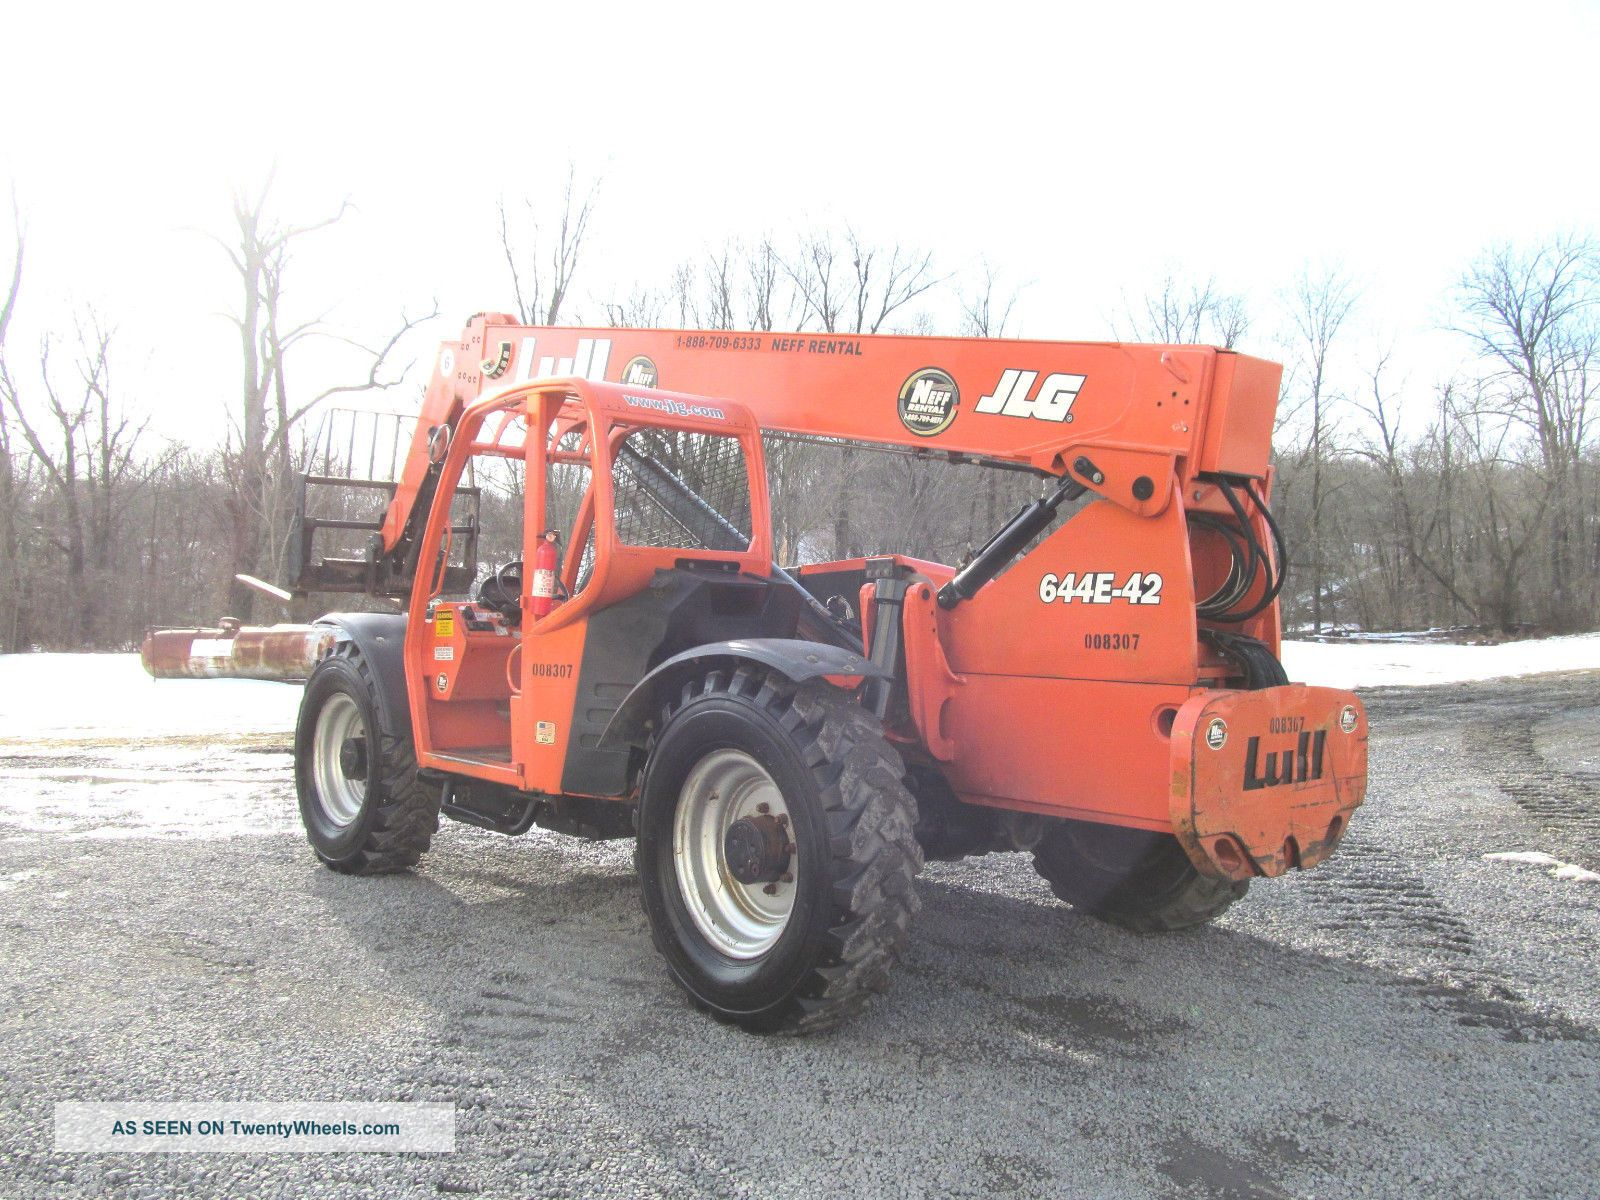 jlg 644e 42 fuel filter lull 644e - 42 telescopic forklift, telehandler, shooting ...